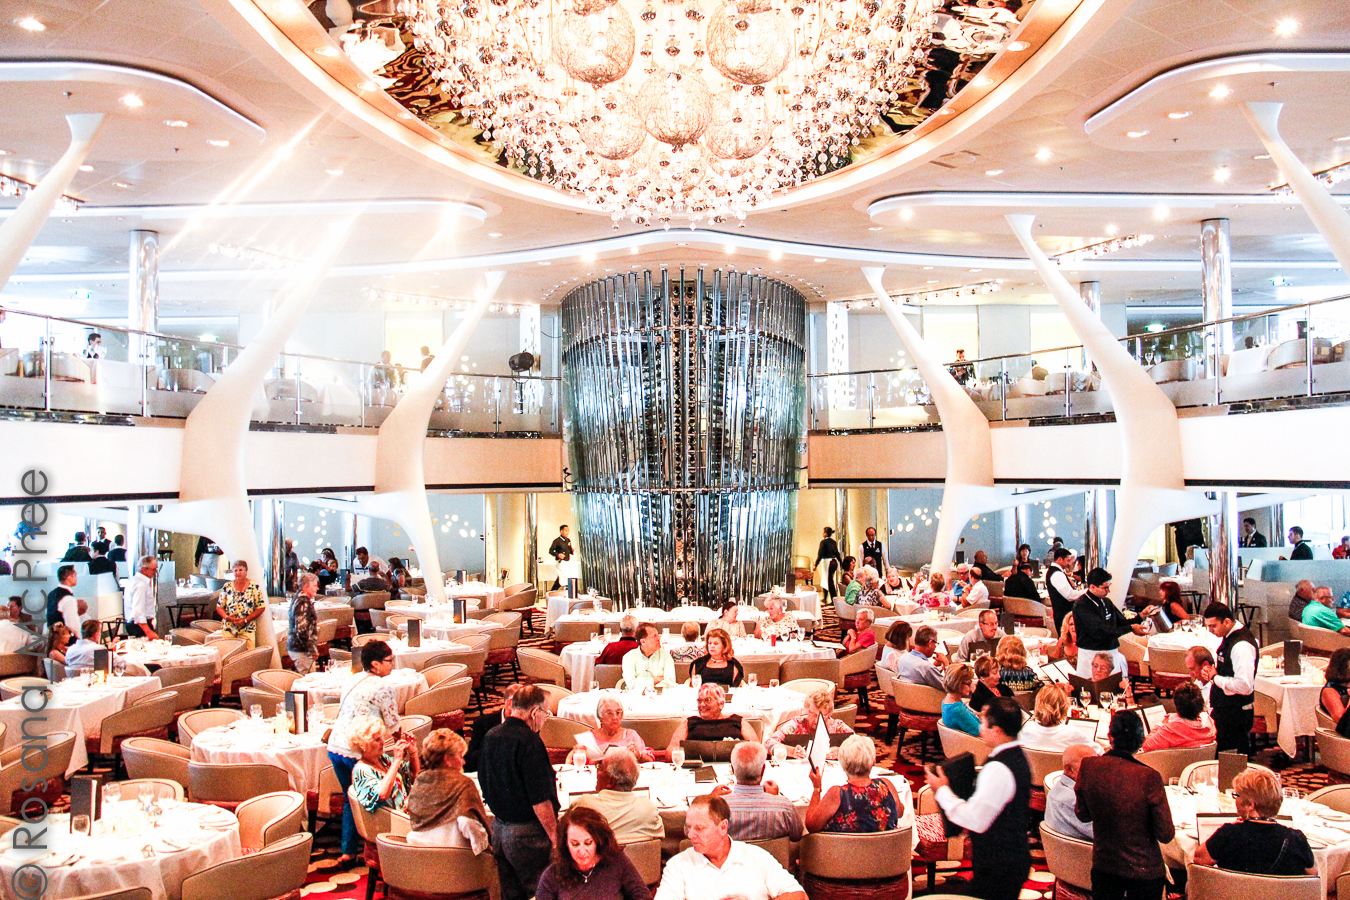 Celebrity Silhouette - - Dining Guide - Beyondships2